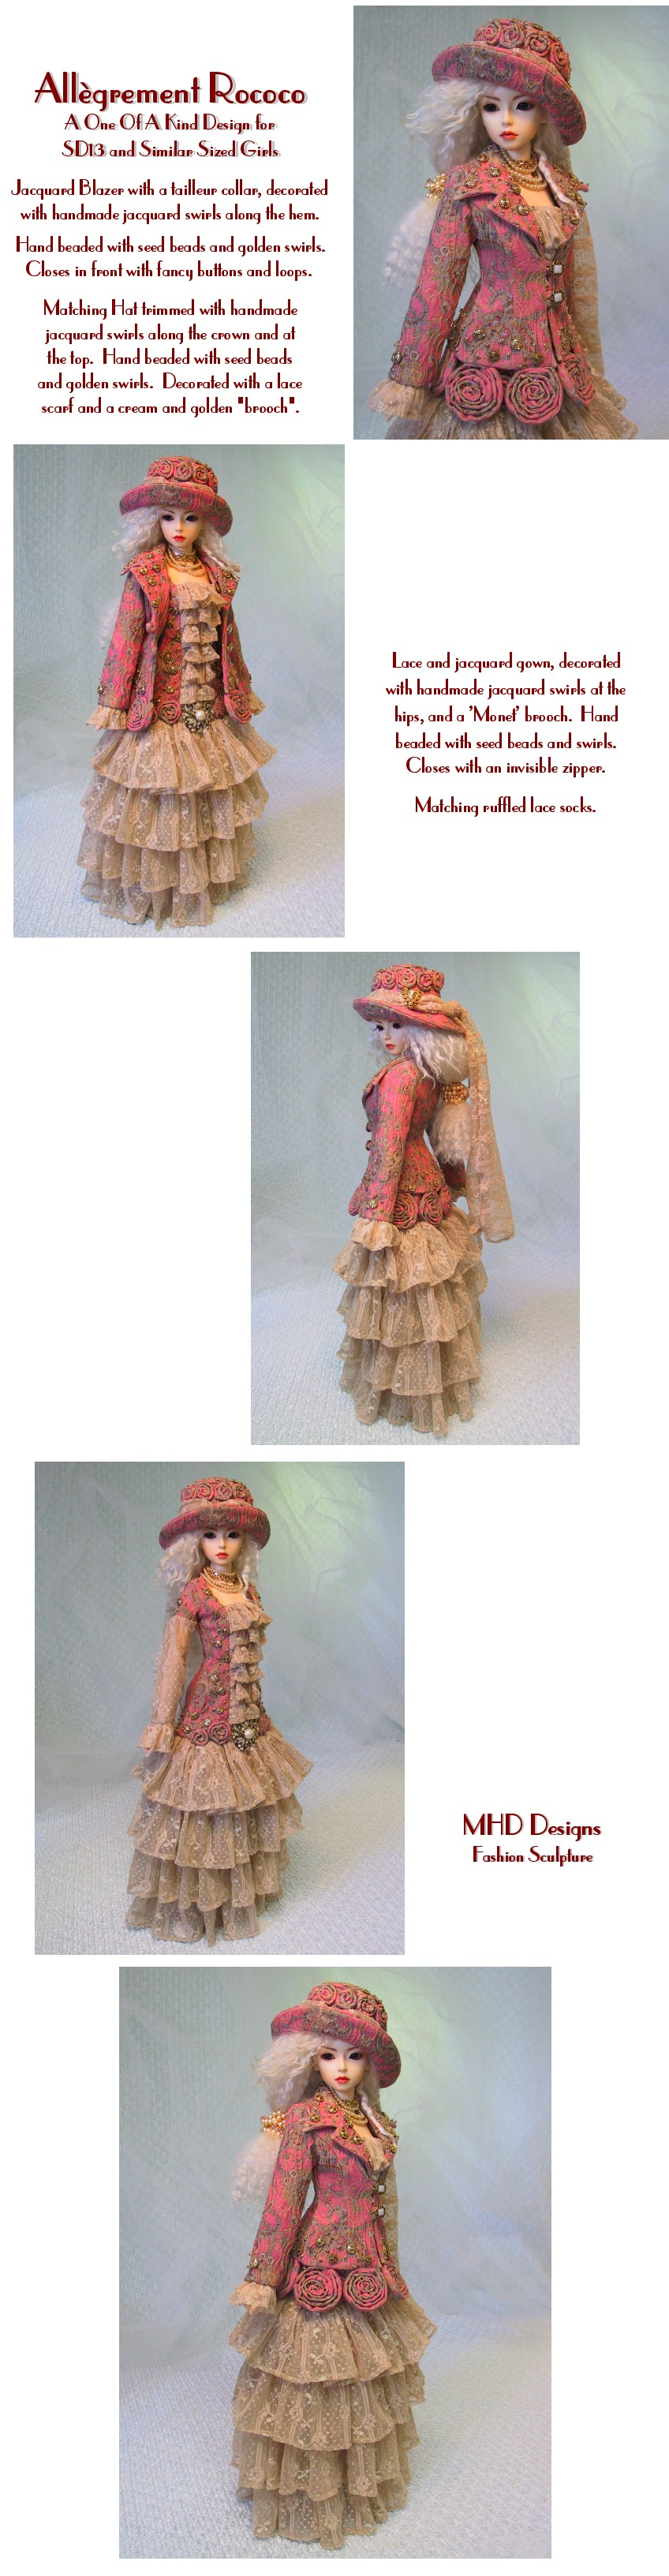 Lighthearted Rococo - an OOAK Design by Magalie Houle Dawson - 5 High Resolution Photographs, your patience is appreciated!